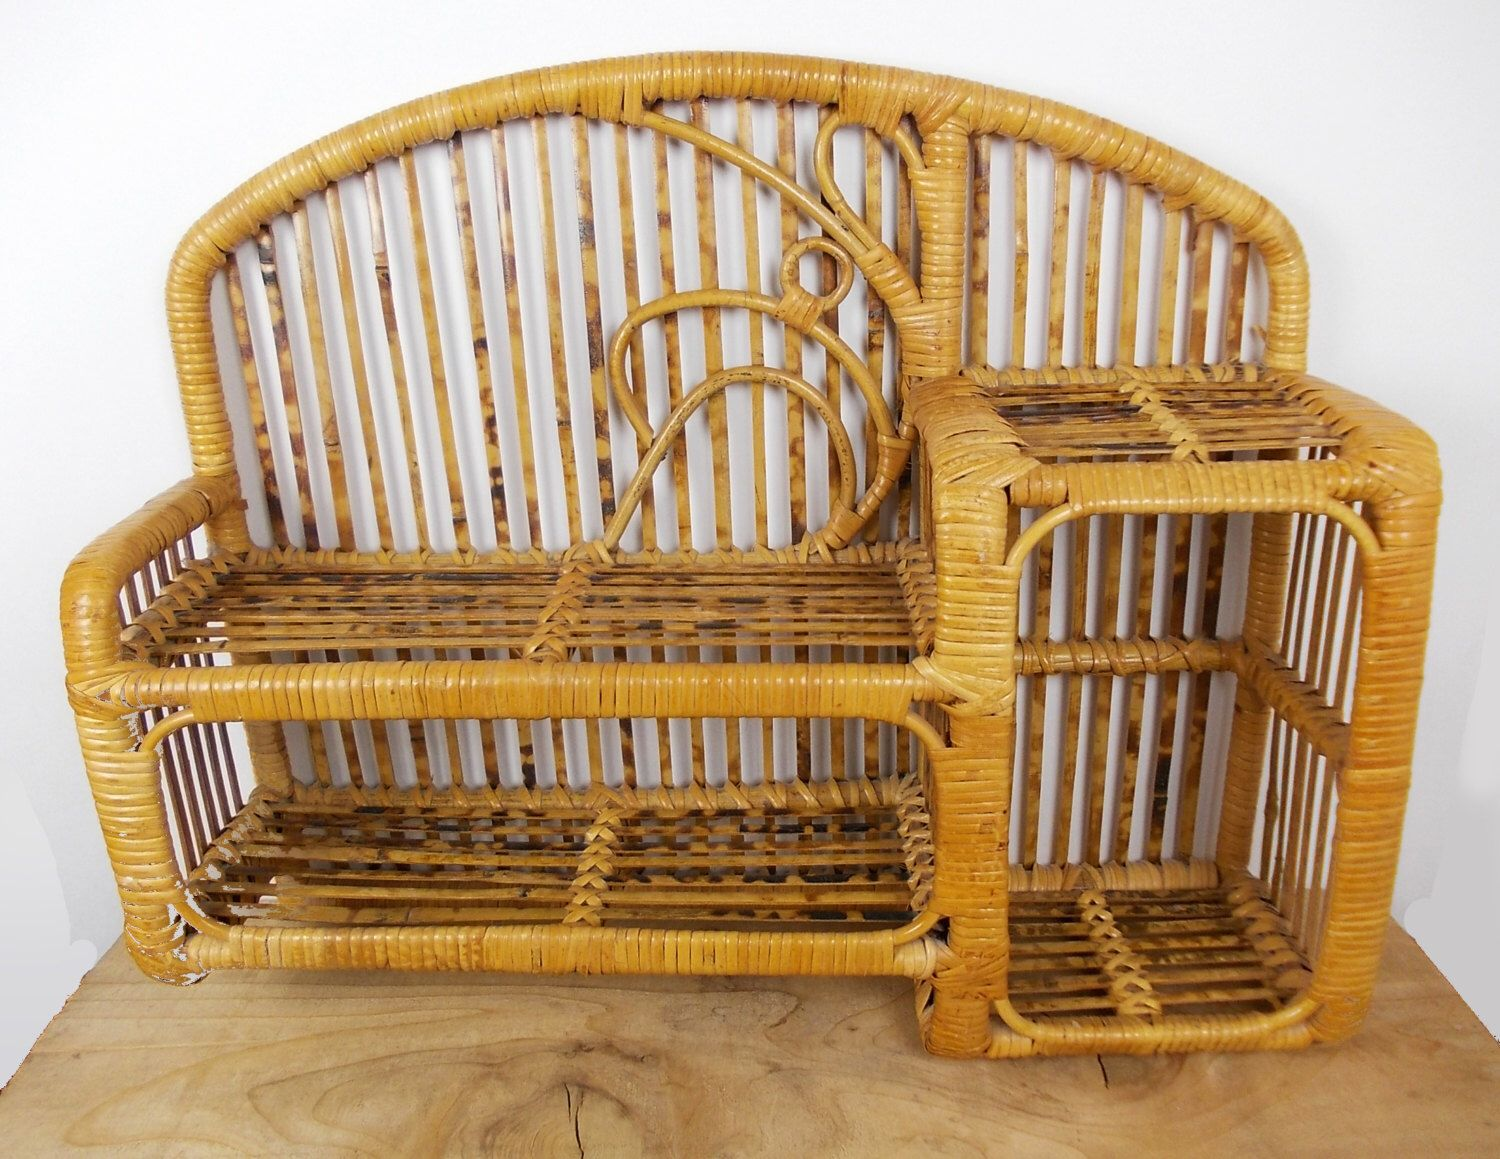 vintage bamboo shelf, rattan wall shelf, wicker furniture